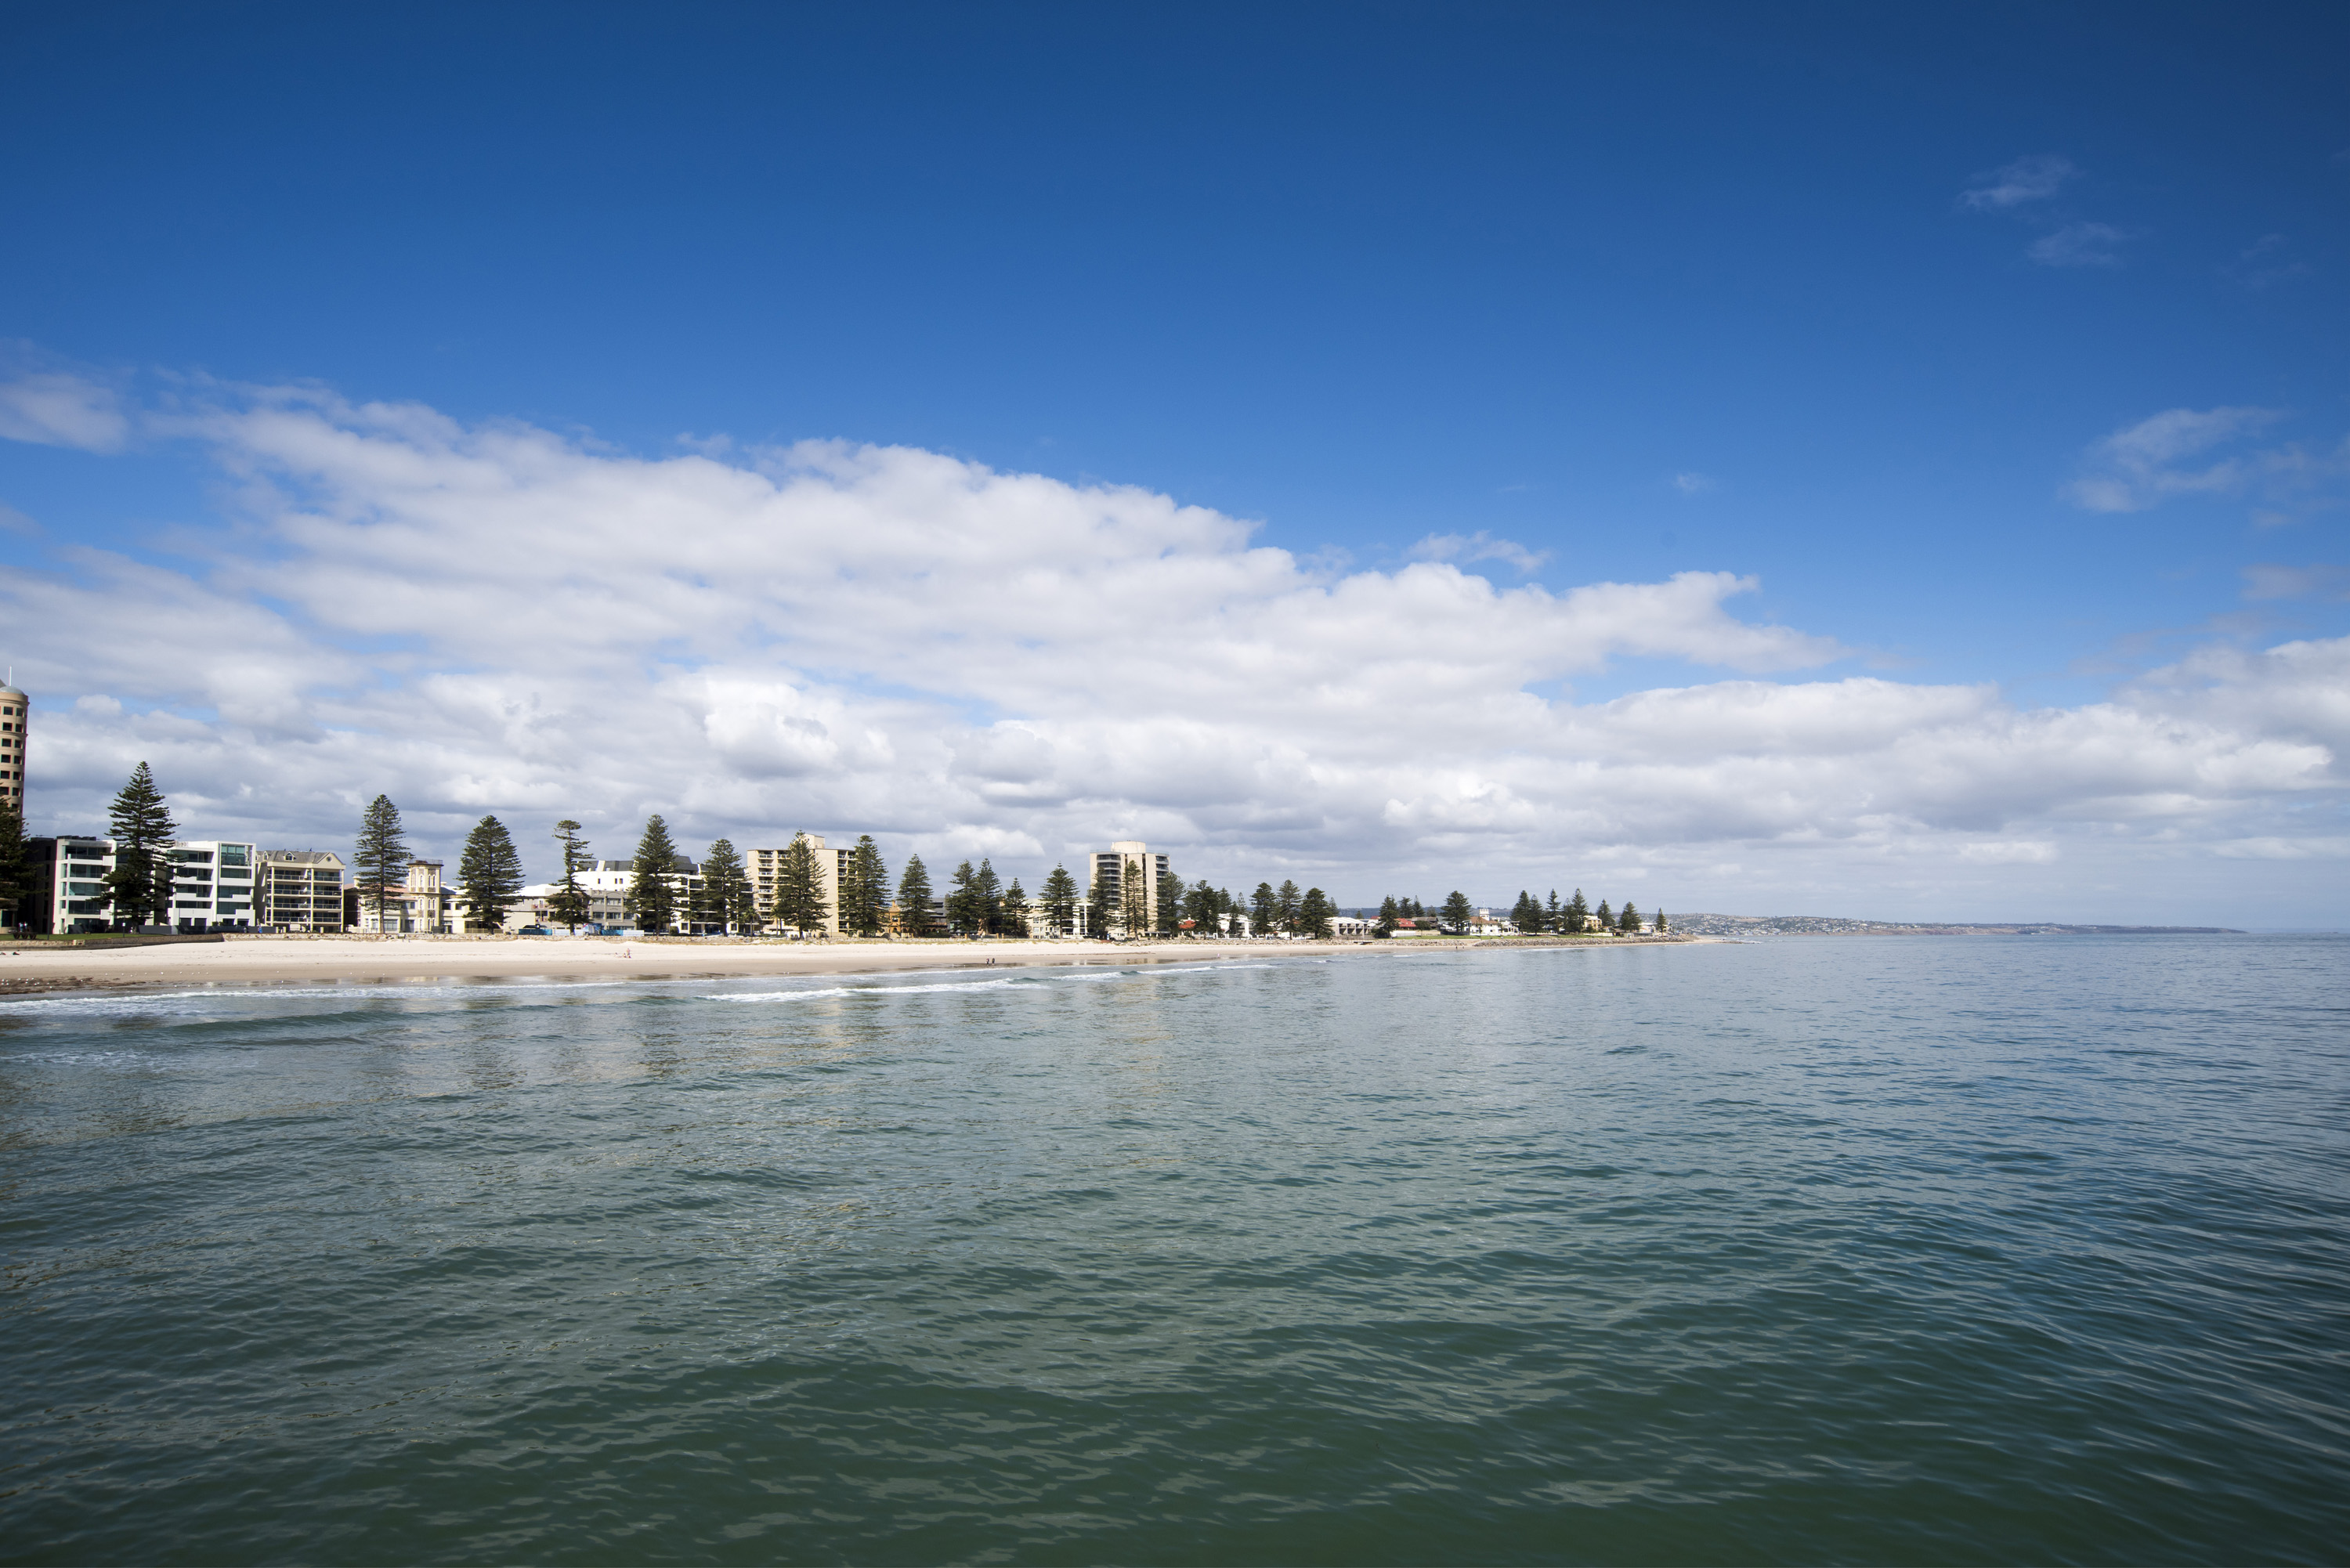 Waterfront coastline with a long sandy beach lined with trees and apartment buildings, Glenelg, Adelaide, Australia, viewed across the water of the bay